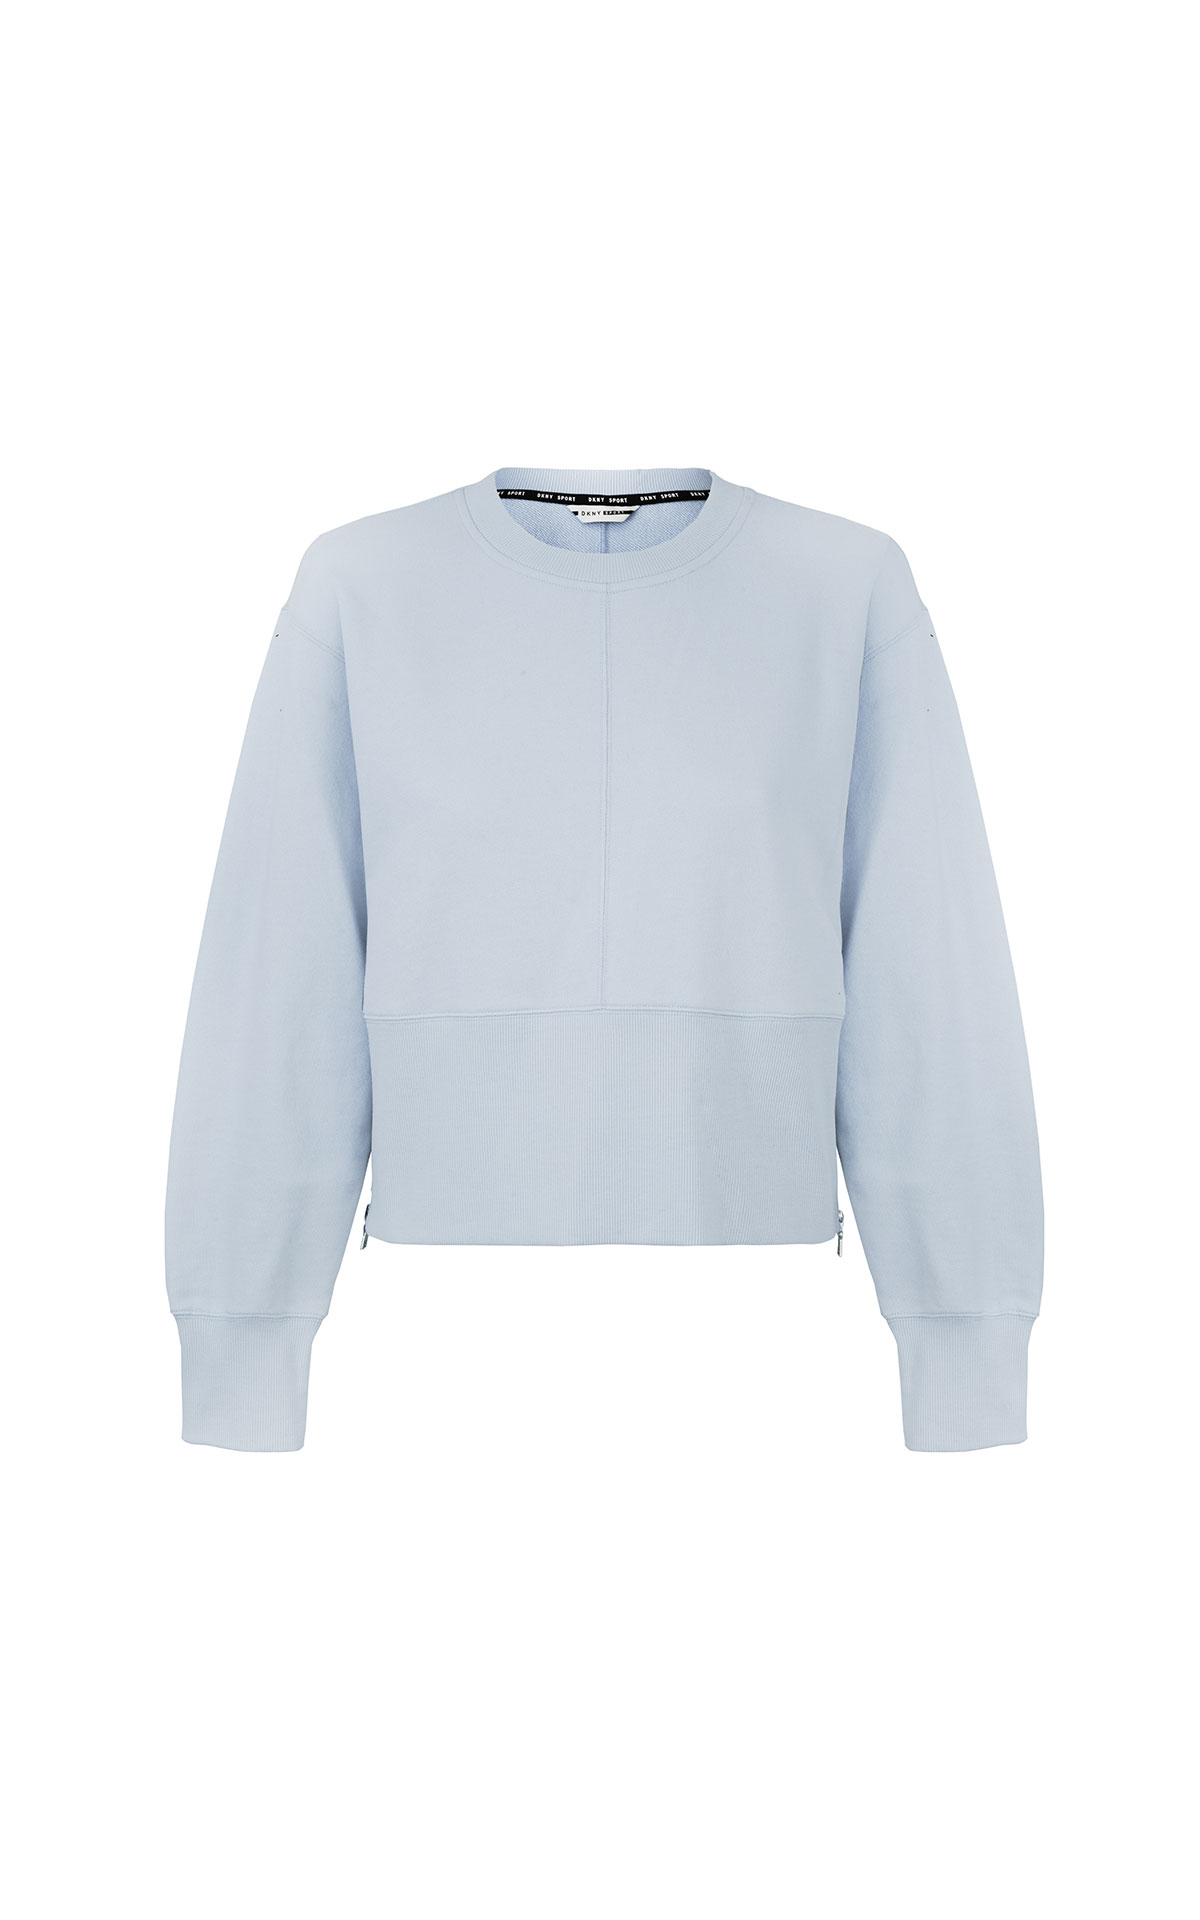 DKNY Cropped Crewneck Pullover with side zipper from Bicester Village